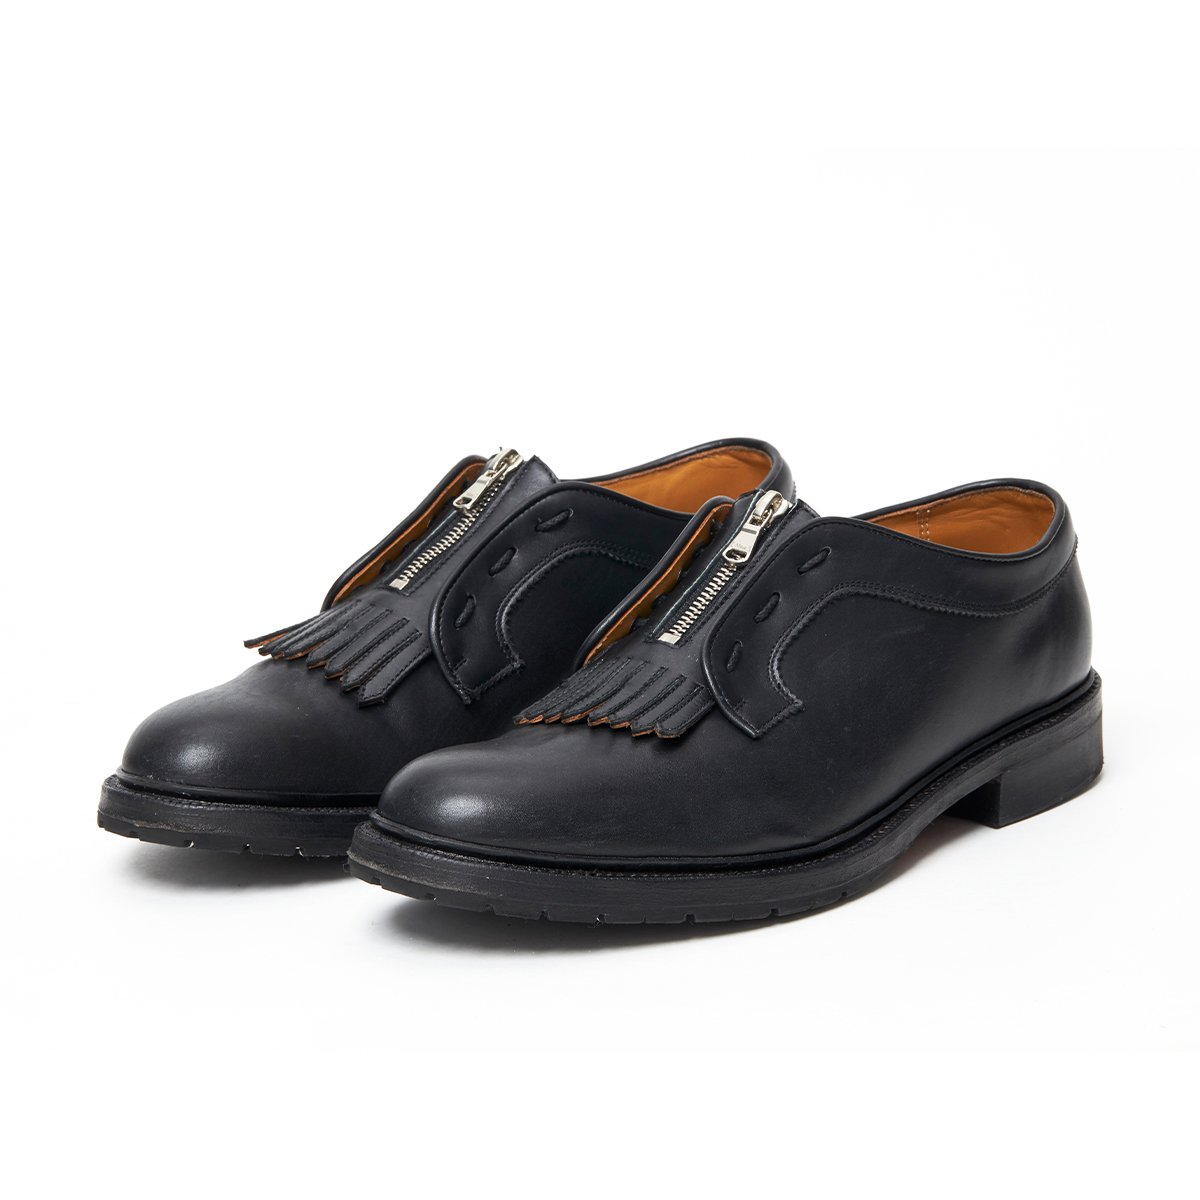 <img class='new_mark_img1' src='https://img.shop-pro.jp/img/new/icons5.gif' style='border:none;display:inline;margin:0px;padding:0px;width:auto;' />FRONT TASSEL ZIP PLANE TOE SHOES / BLACK